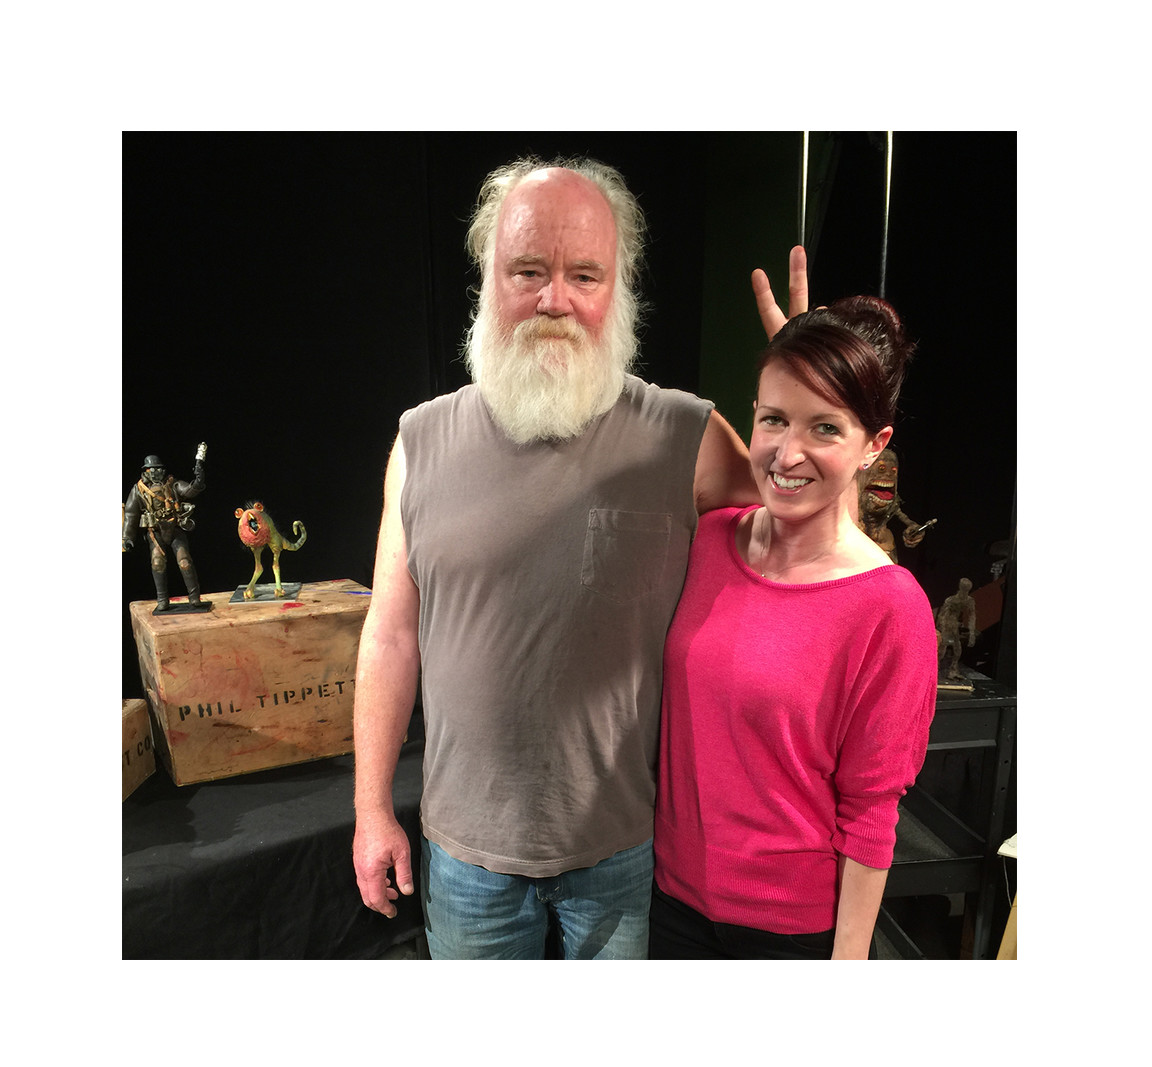 With Phil Tippett